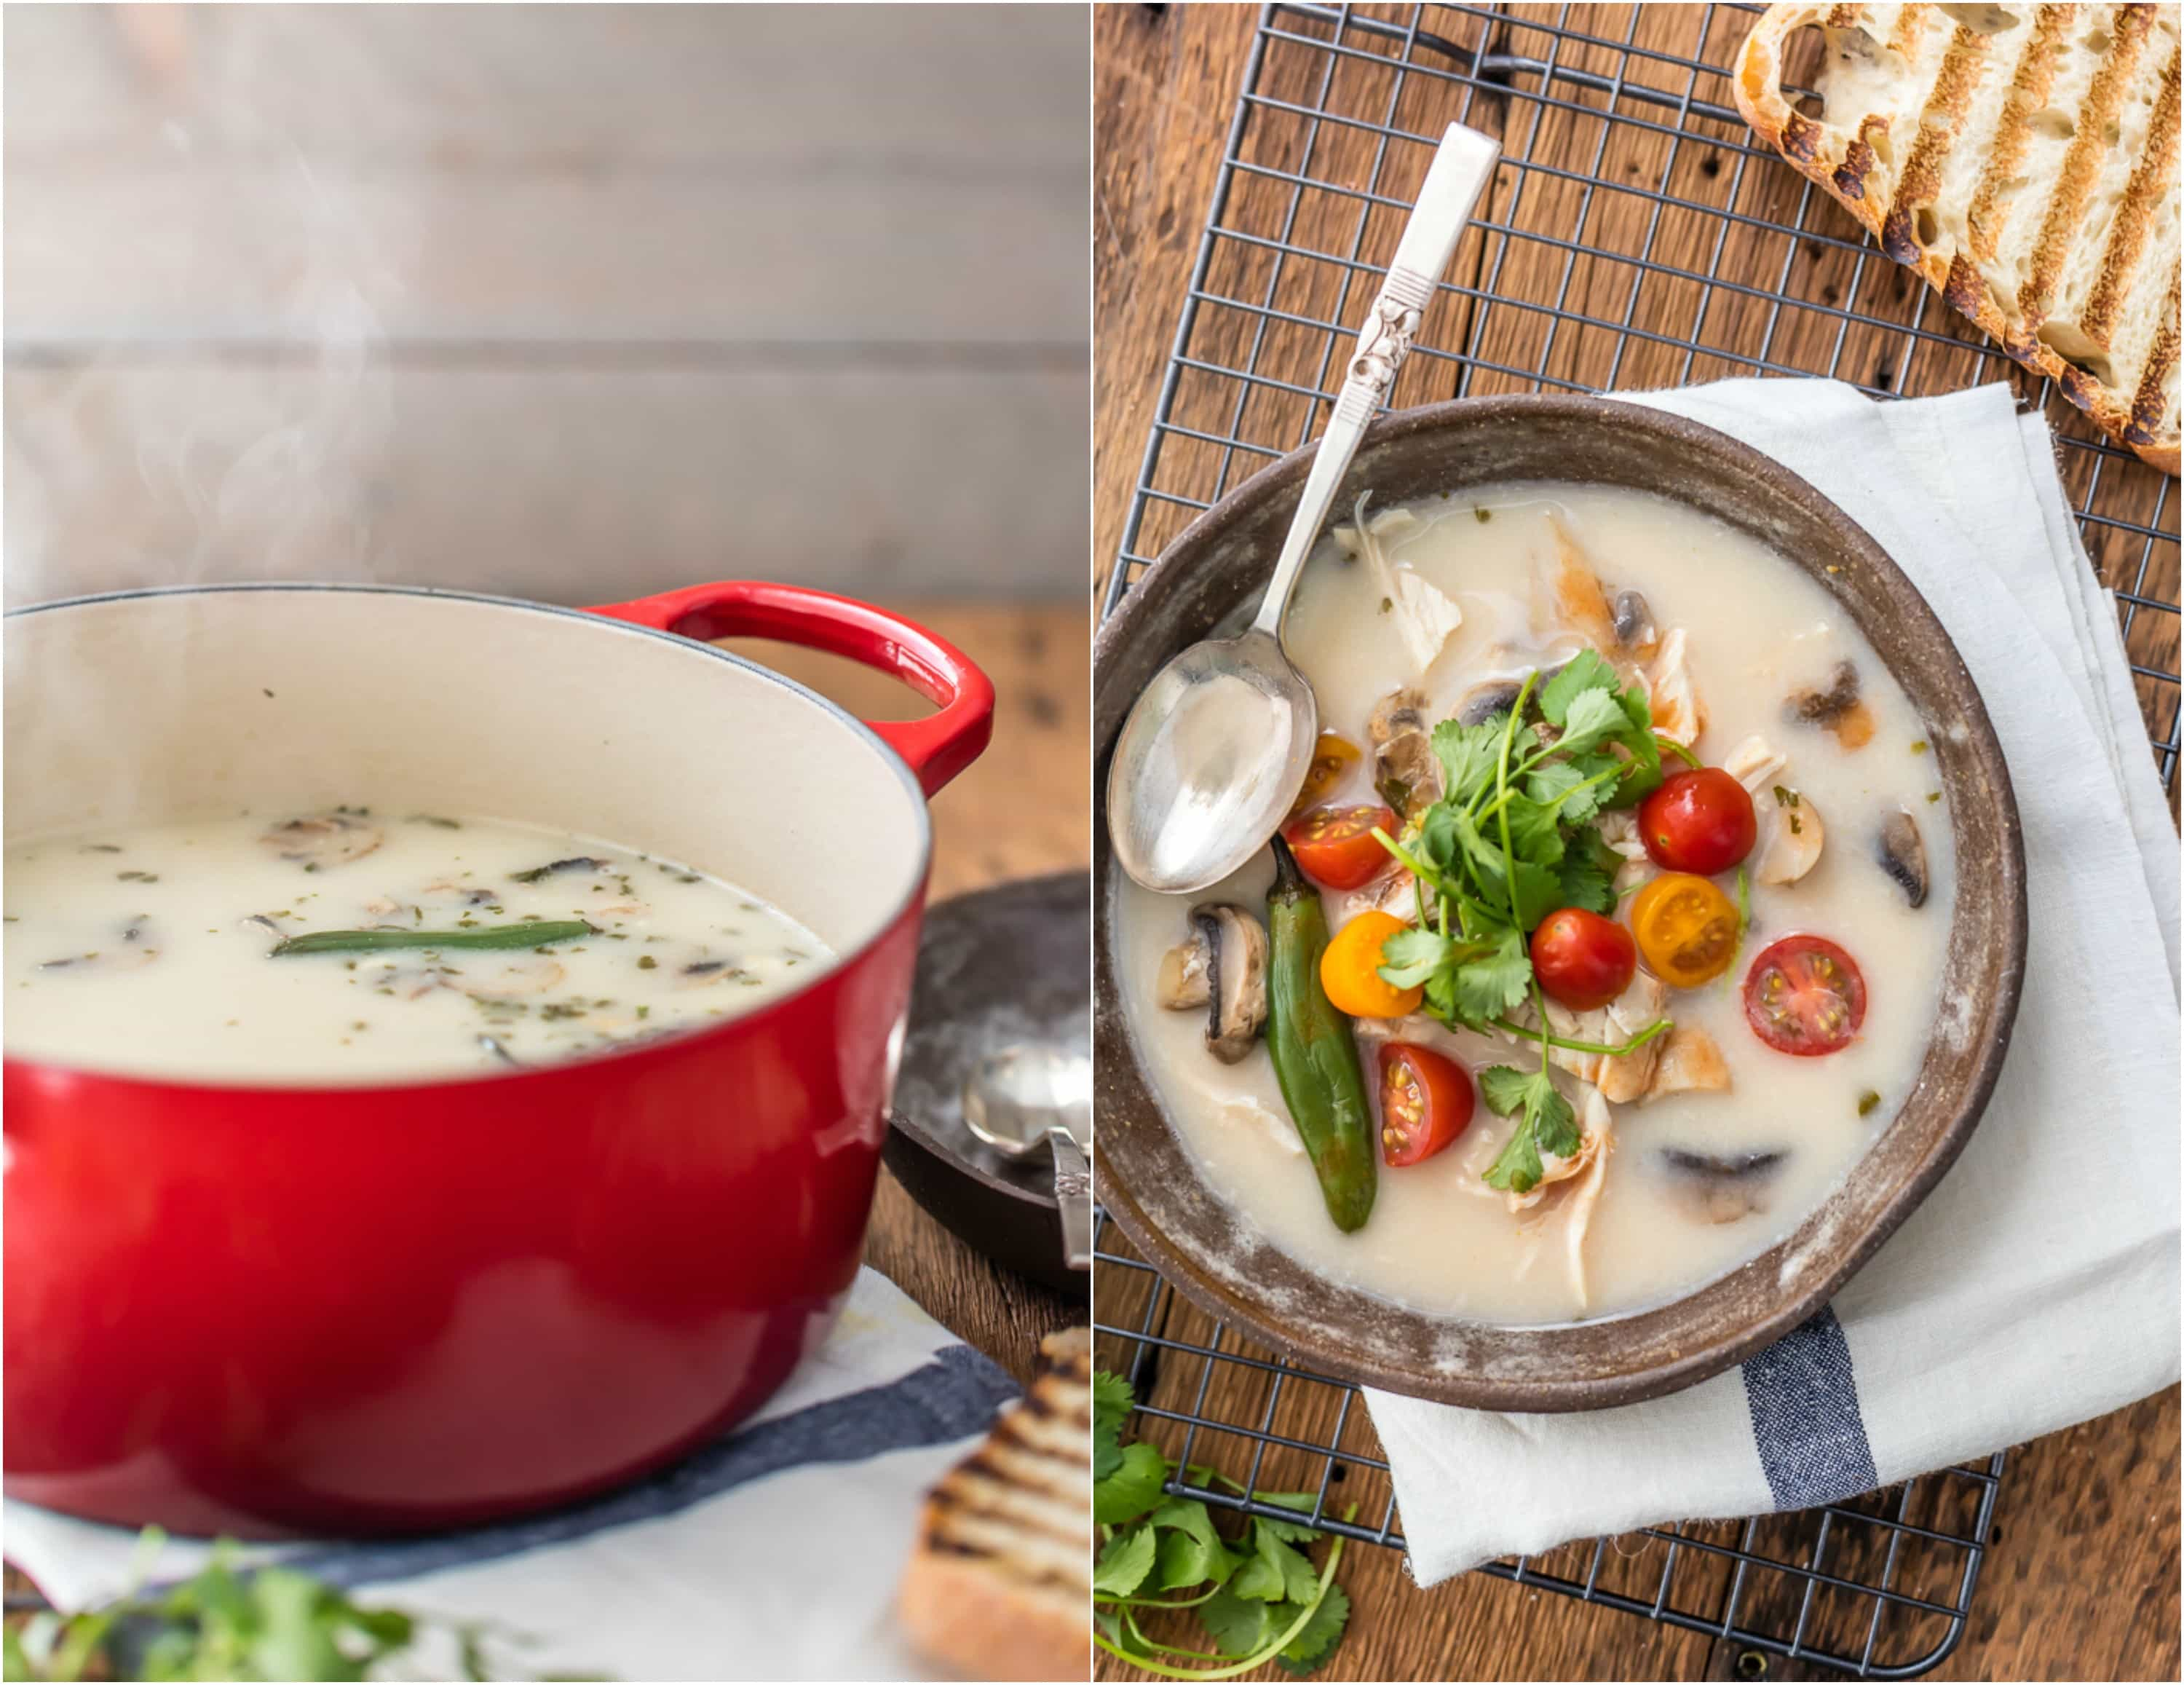 two images sides by side: red pot and bowl of soup